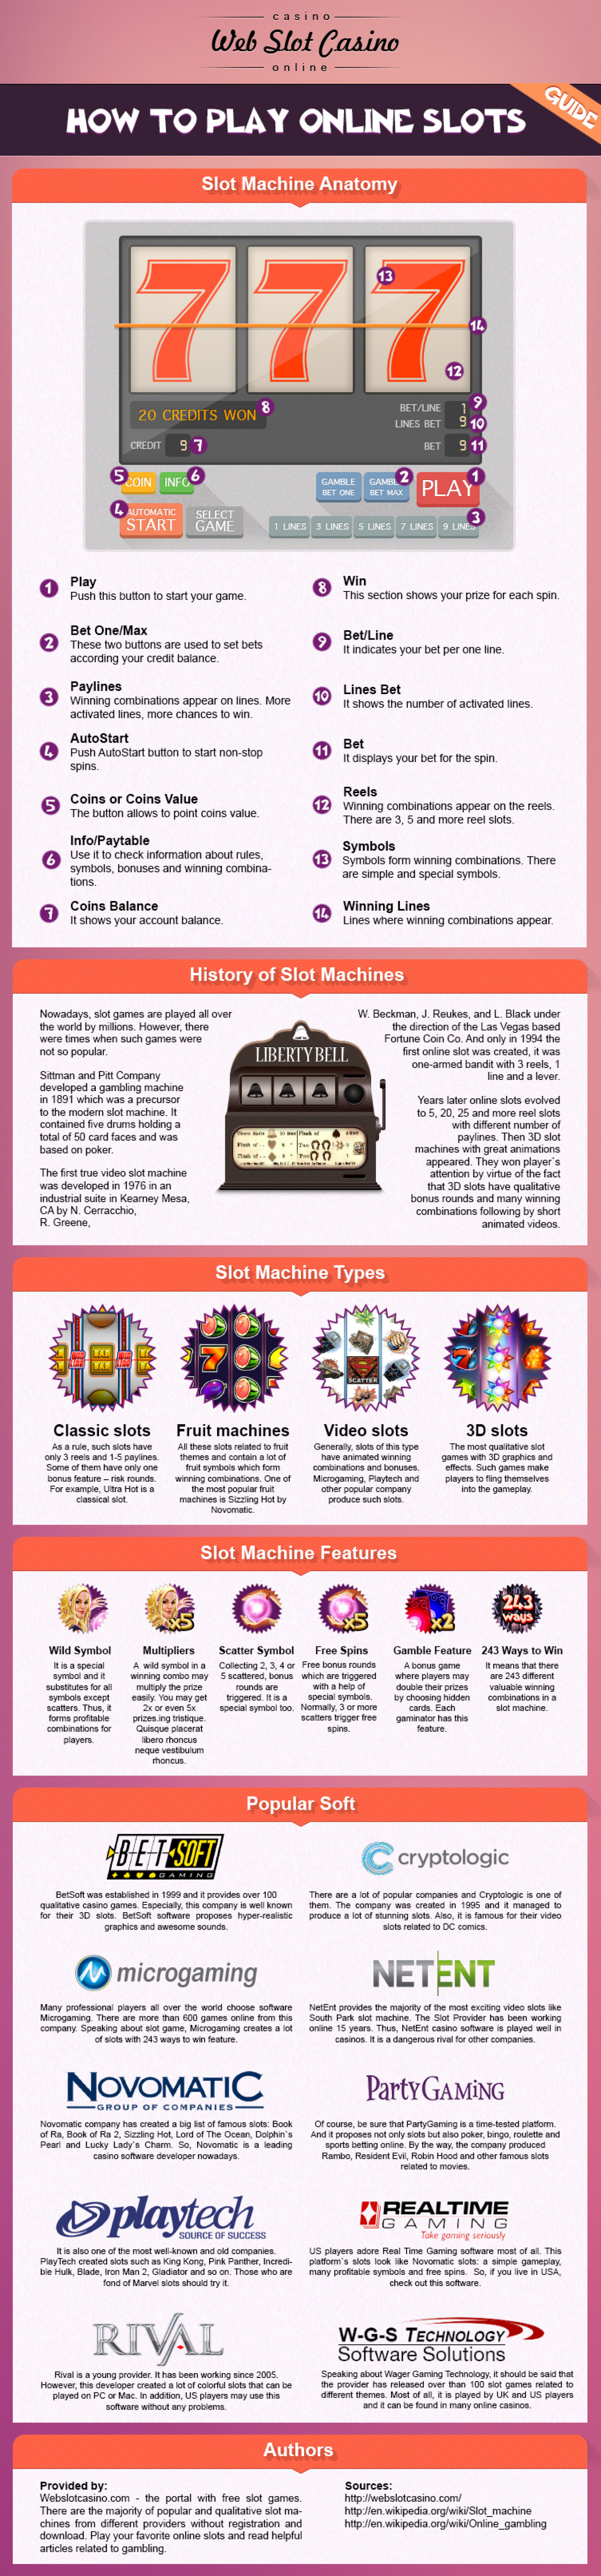 How to Play Online Slots Infographic